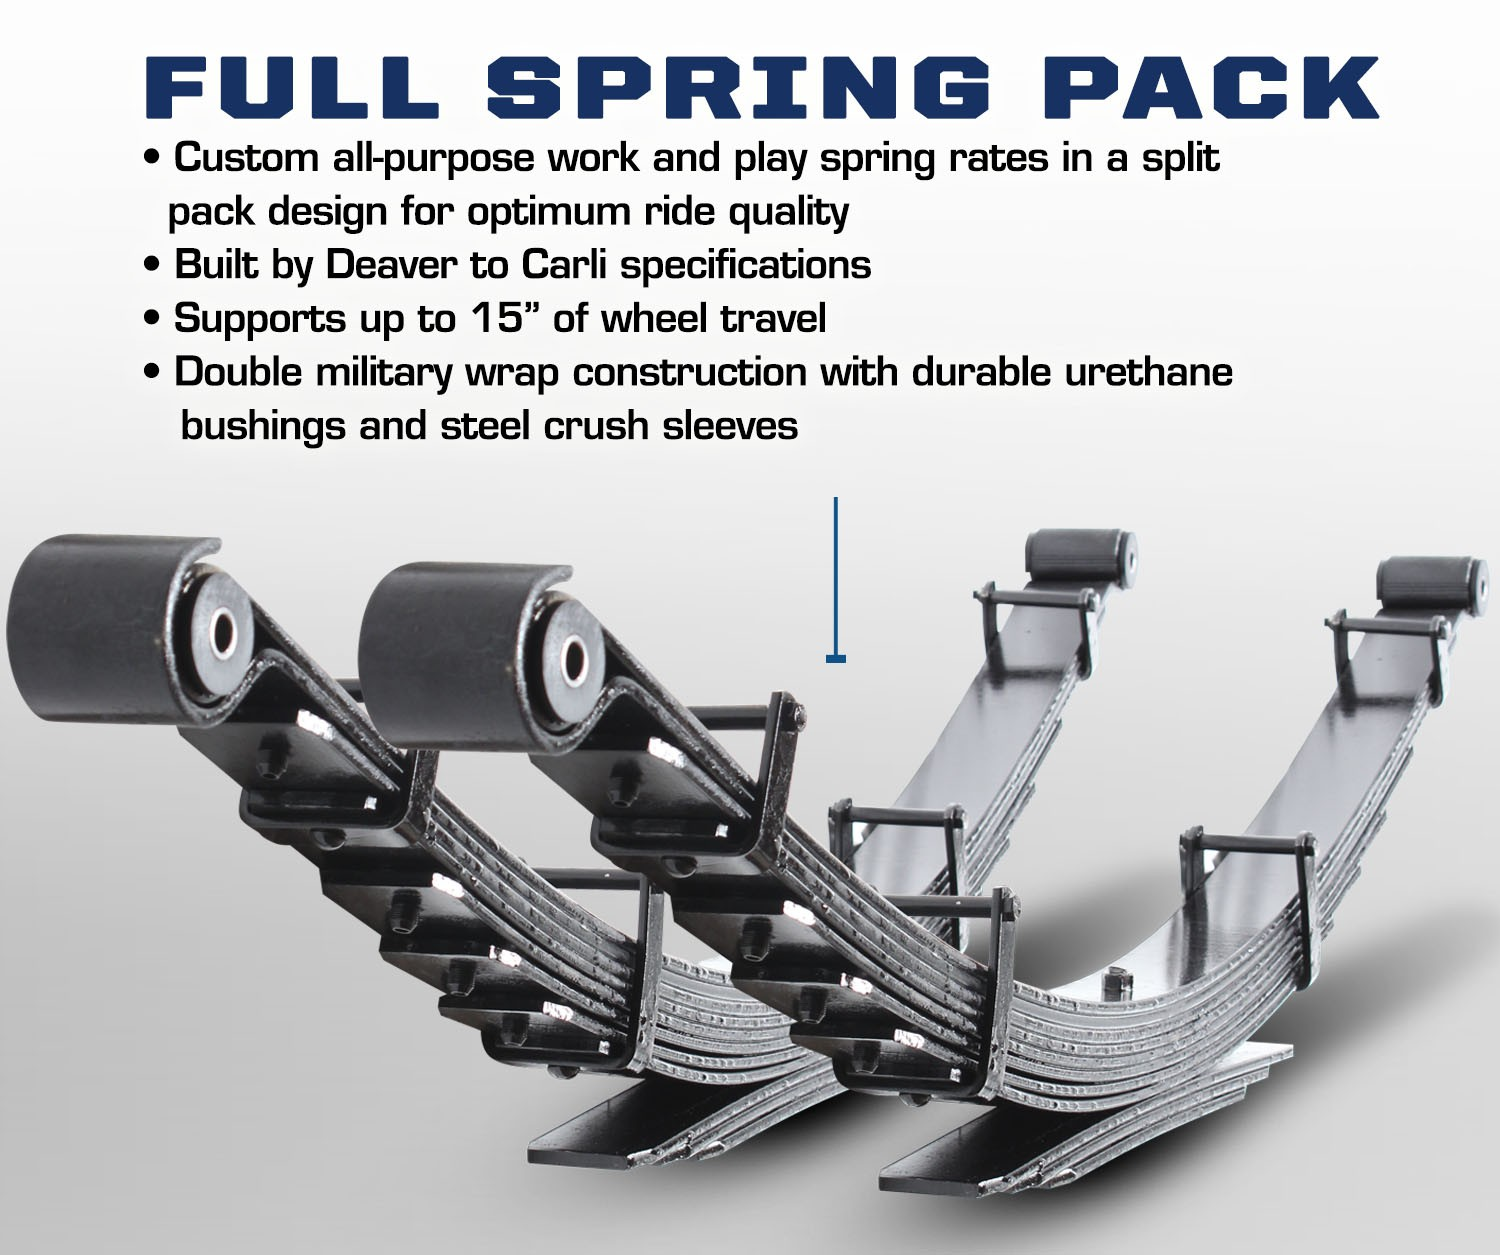 Carli Dodge Ram Rear Full Spring Pack